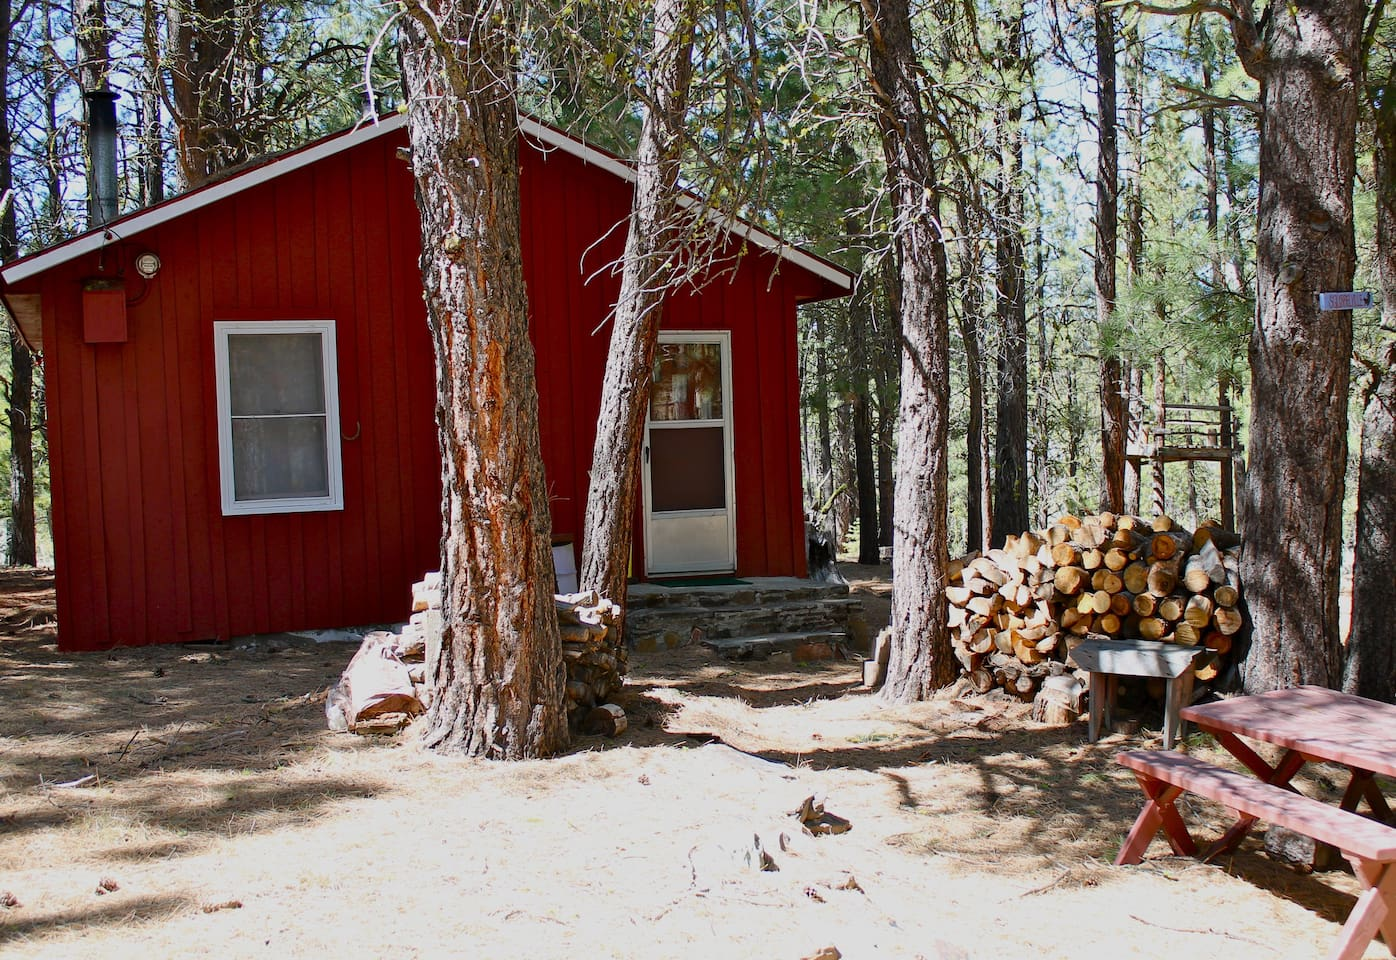 Squirrelville Cabin built in the early 1920s